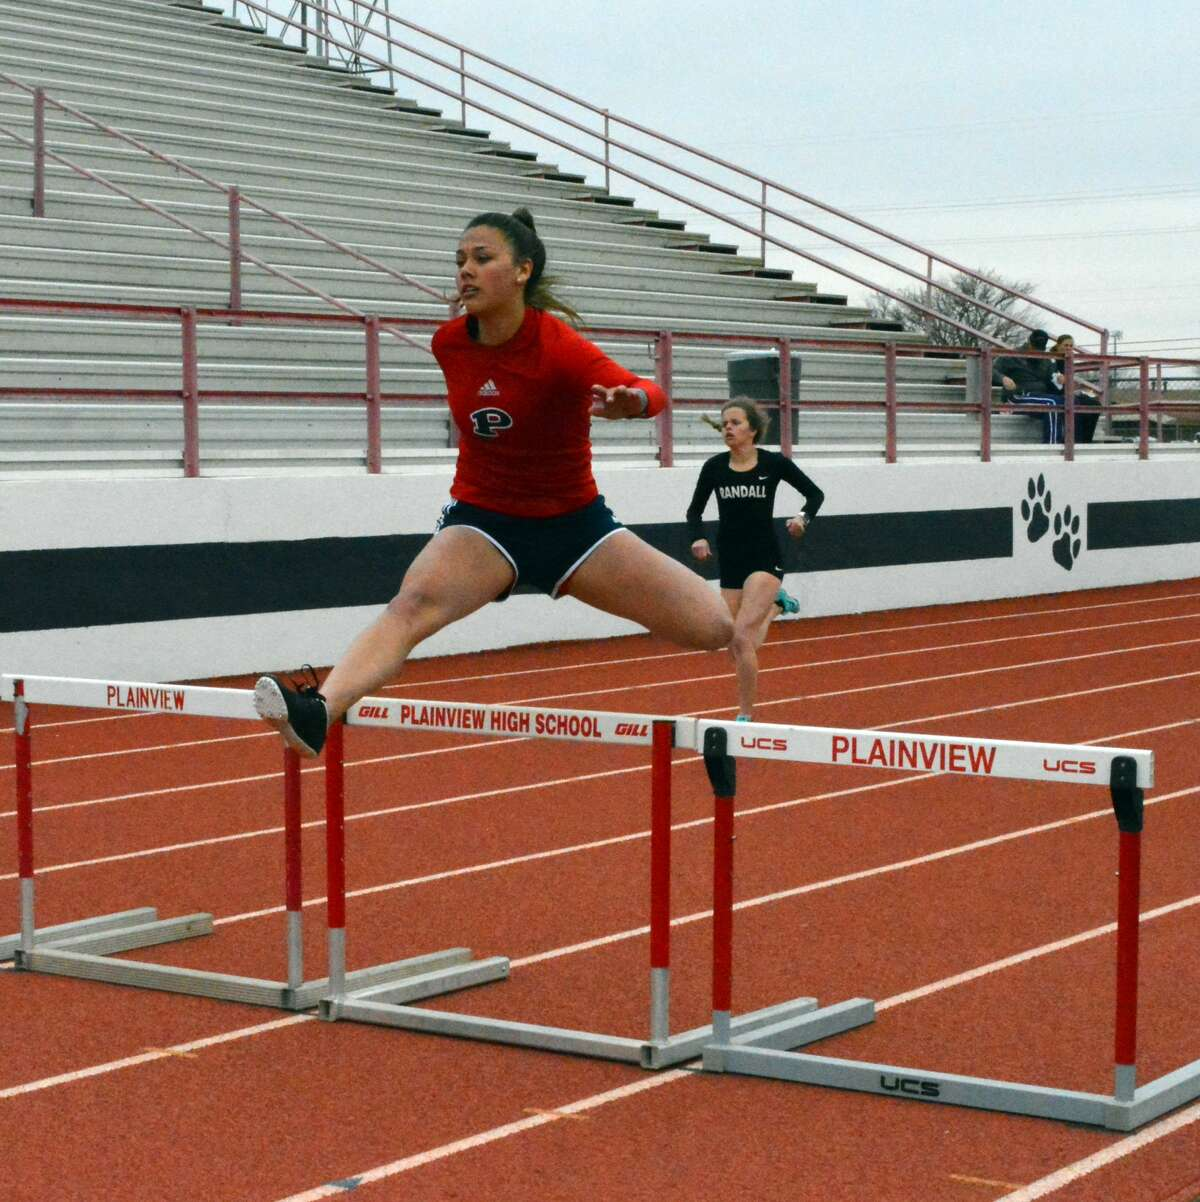 Plainview's track & field team held its annual Bulldogs Relays on Friday at Greg Sherwood Memorial Stadium.